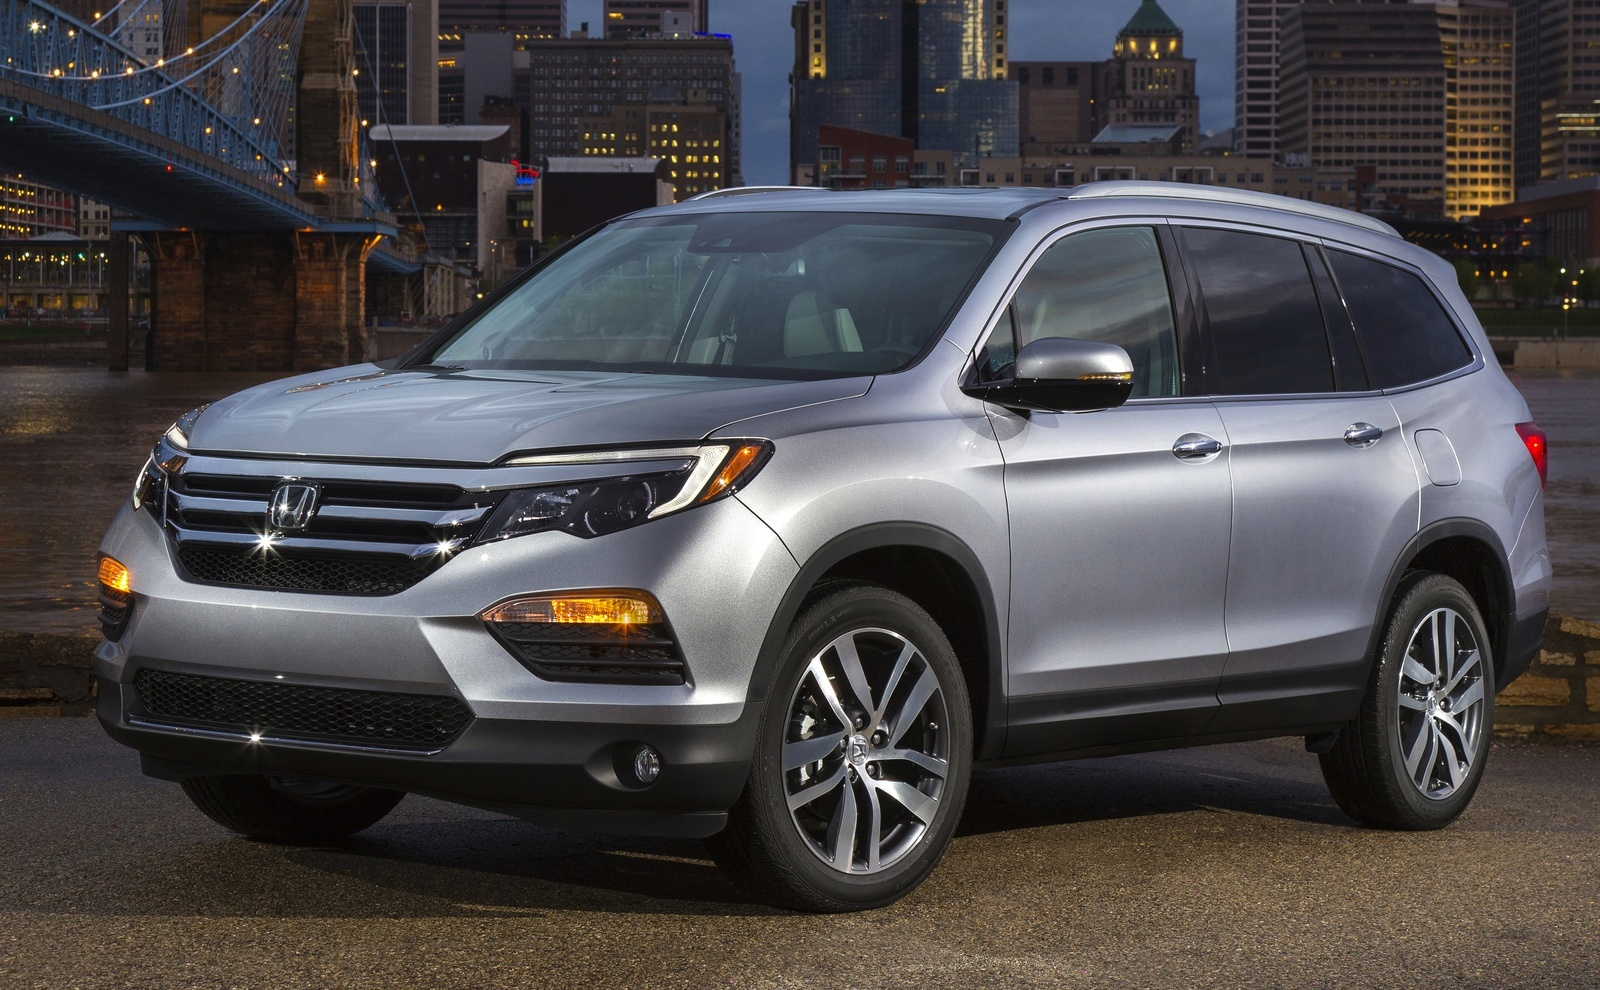 2015 Honda Pilot For Sale >> 2016 Honda Pilot for Sale in your area - CarGurus